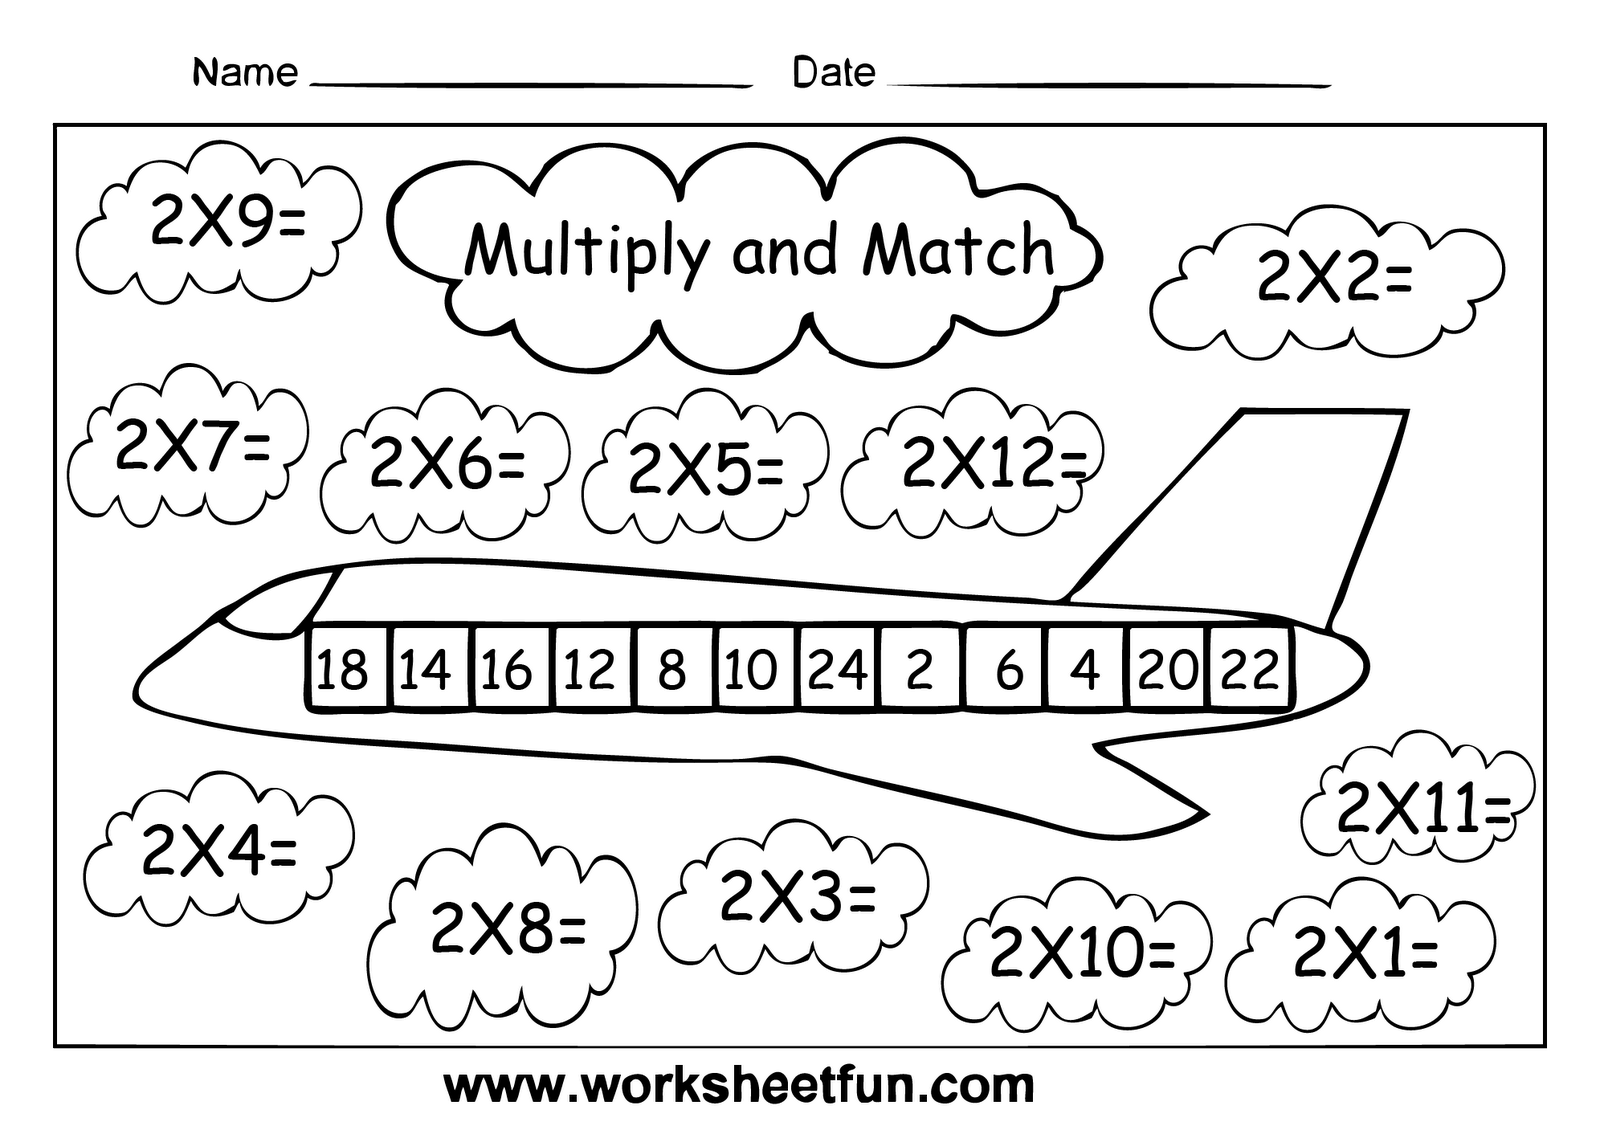 math worksheet : multiplication table worksheets for grade 2  grade worksheets : 0 1 2 Multiplication Worksheets